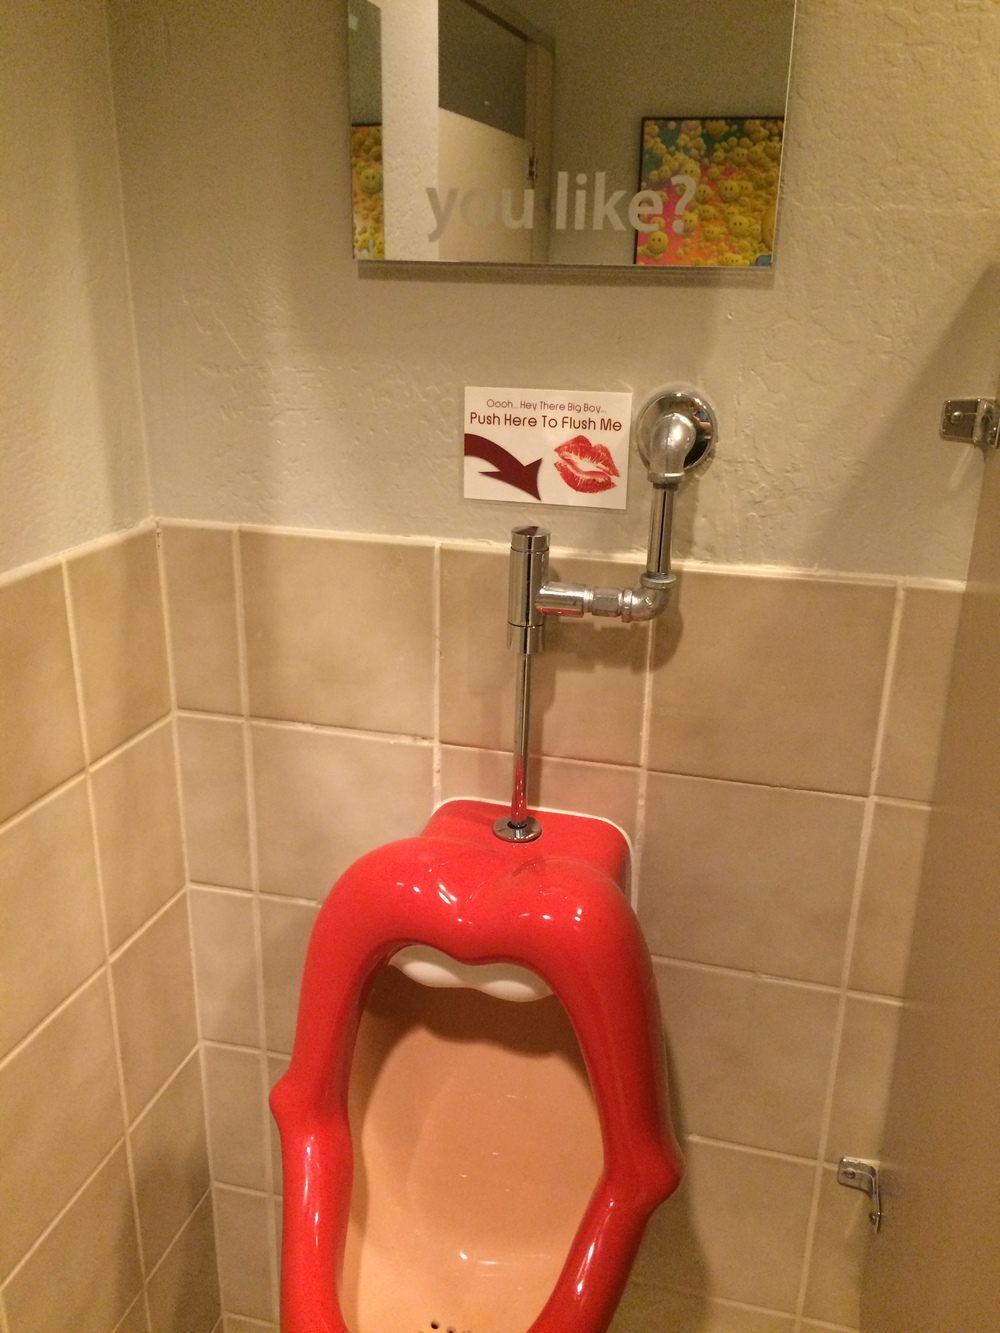 The Best Urinal...ever.